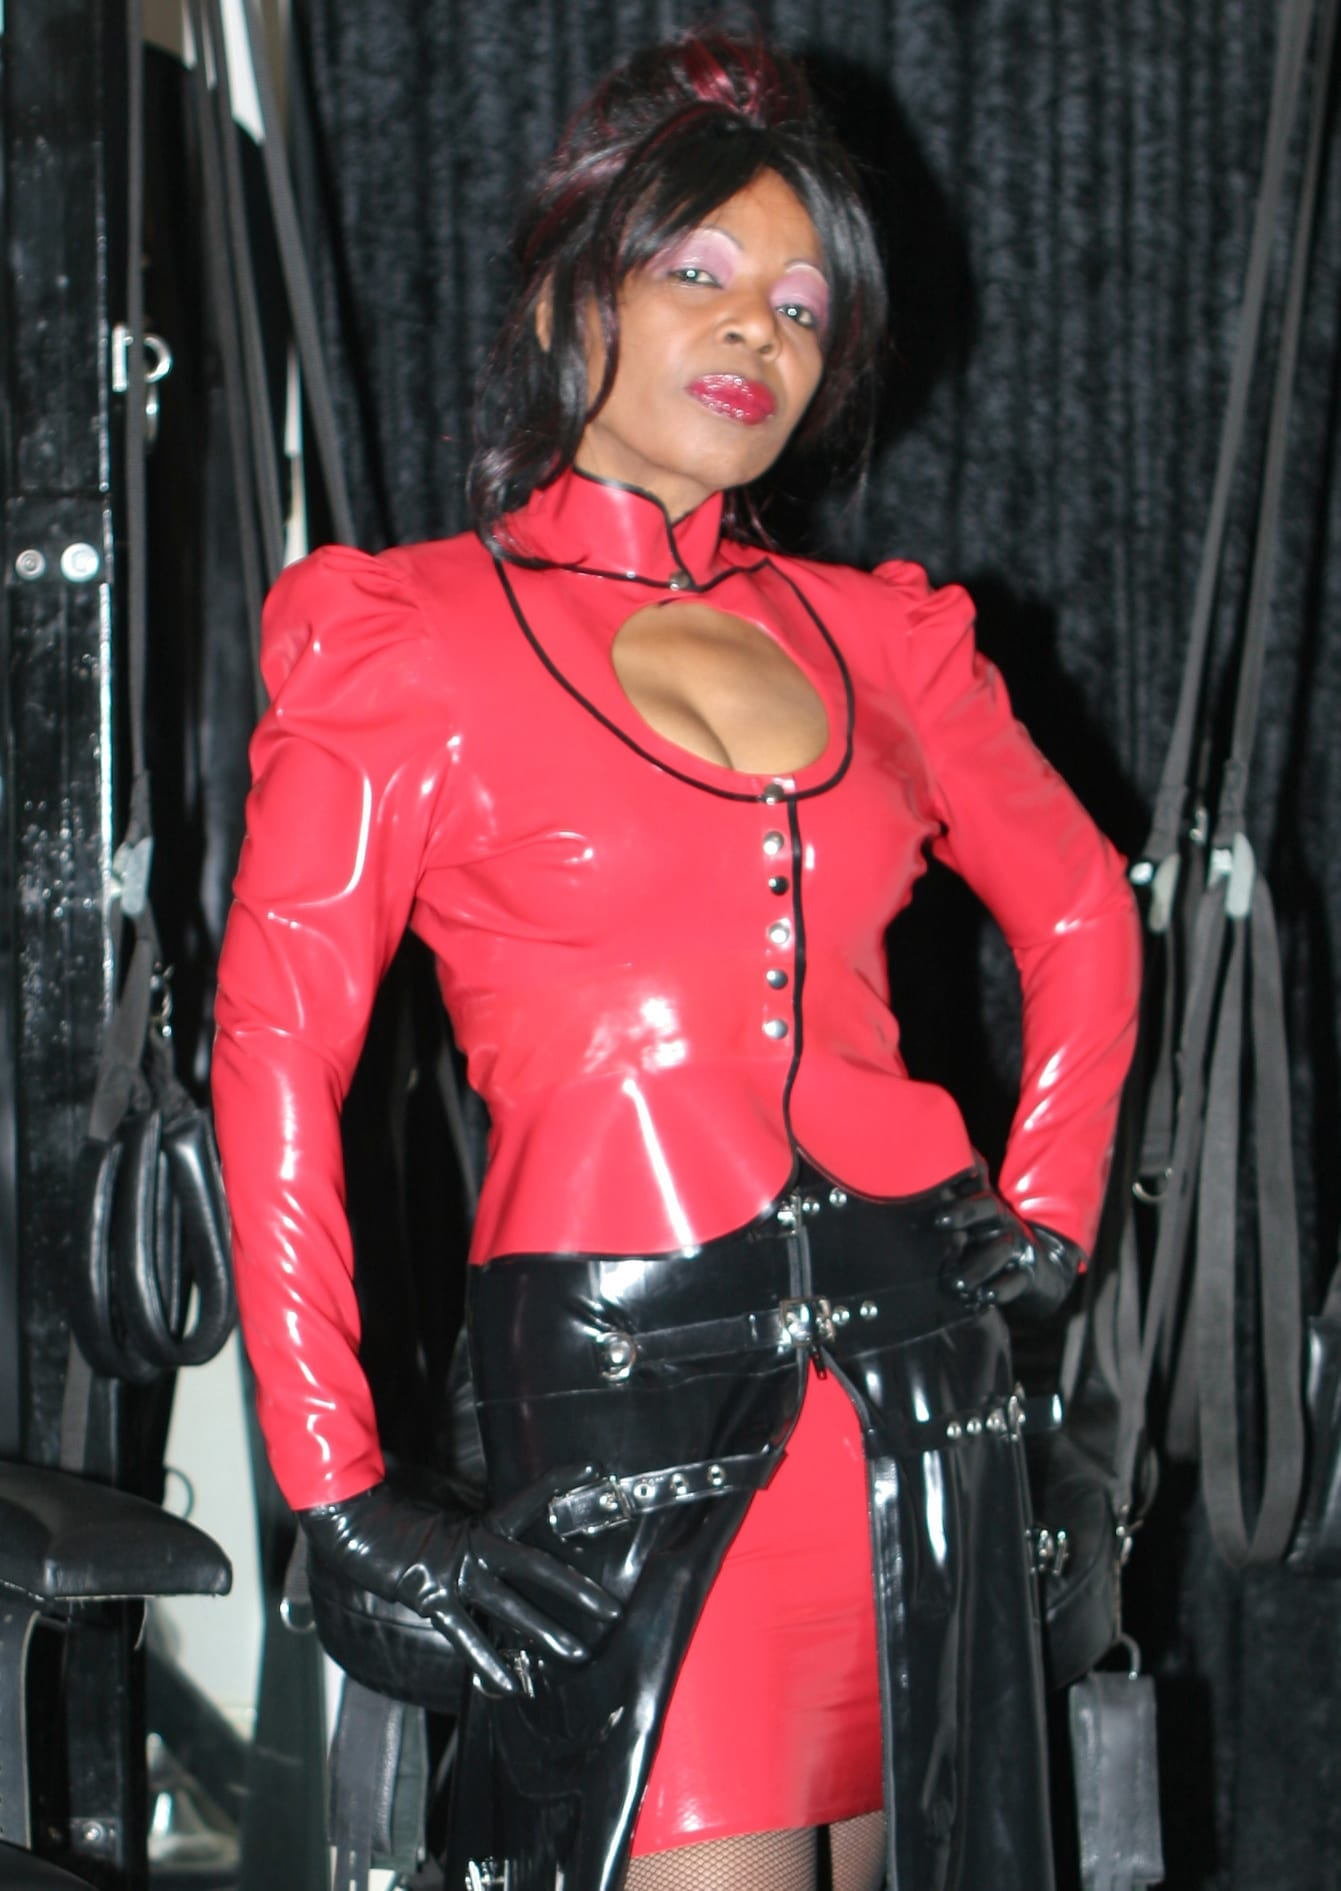 London BDSM dominatrix mistress Queen Ebowe ebony black London dominatrix 10